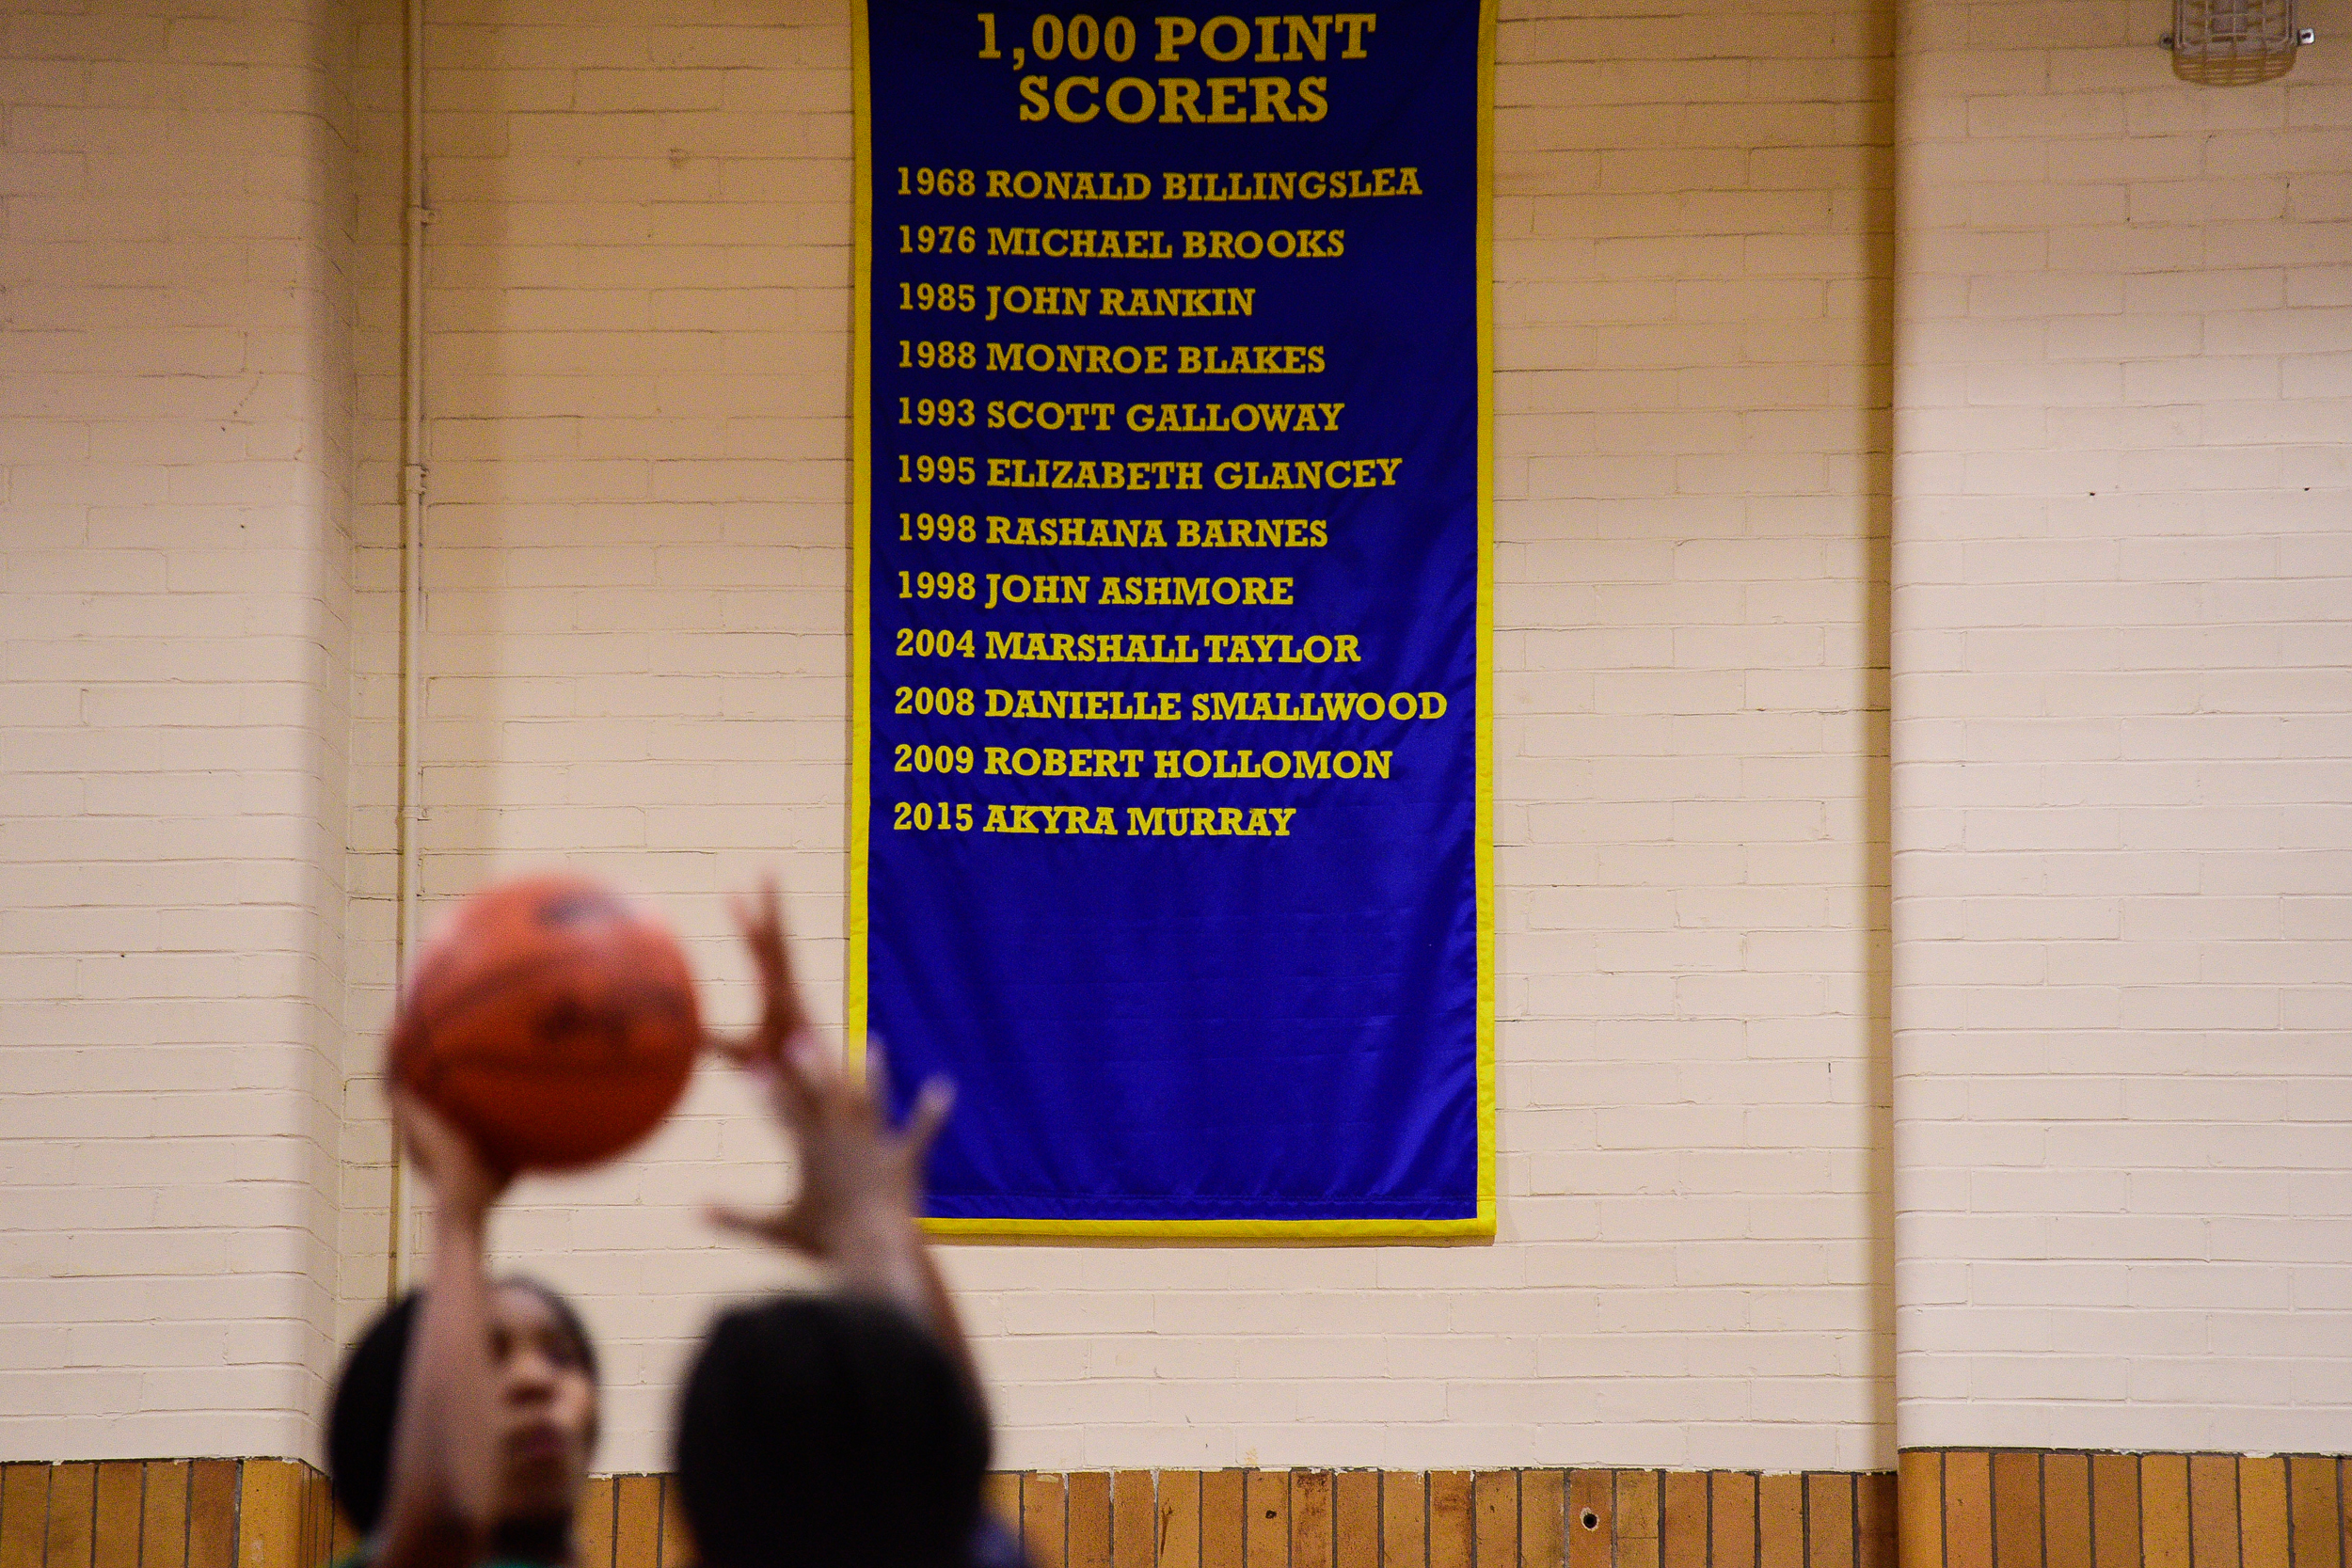 A banner highlighting 1,000 point scorers hangs on the wall of the gym during girls basketball practice at West Catholic High School.